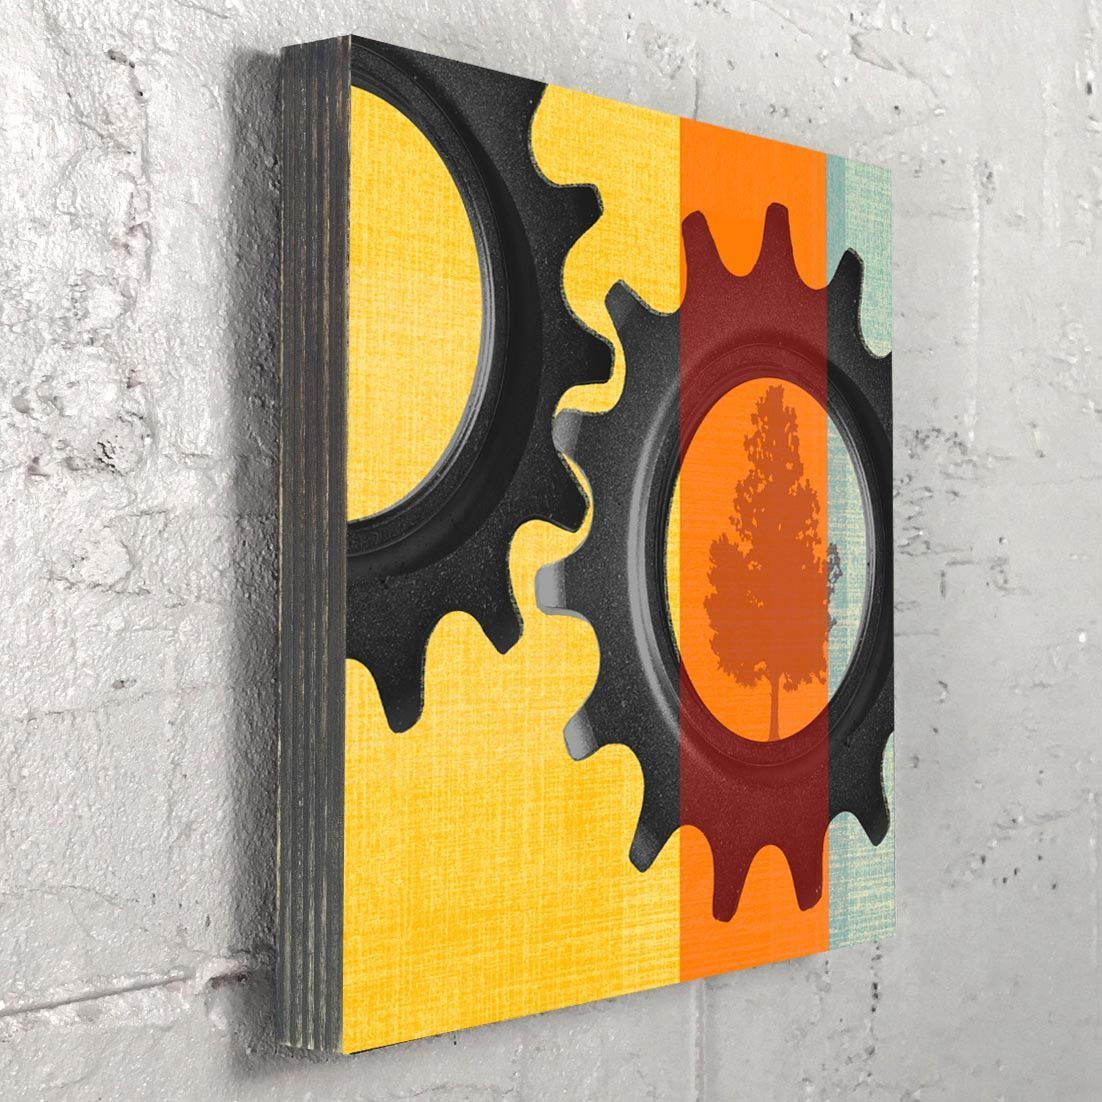 Gears - Bike Part and Nature Photography Art on Wood | Products ...